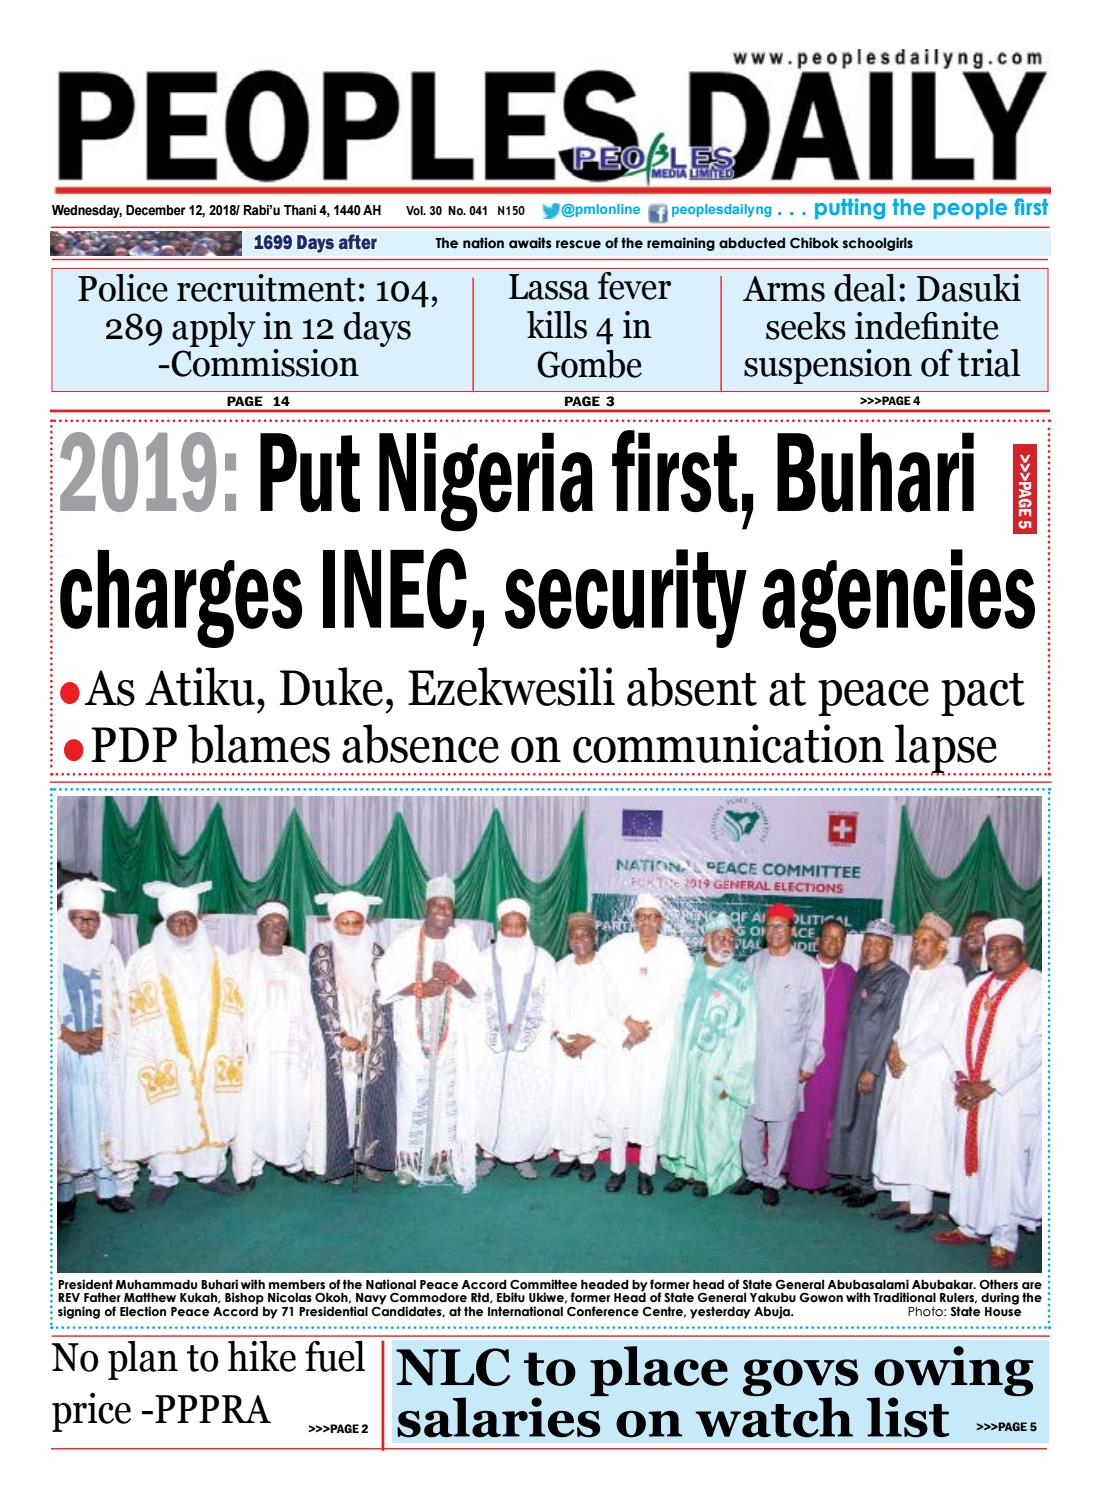 Wednesday, December 12, 2018 Edition by Peoples Media Limited - issuu